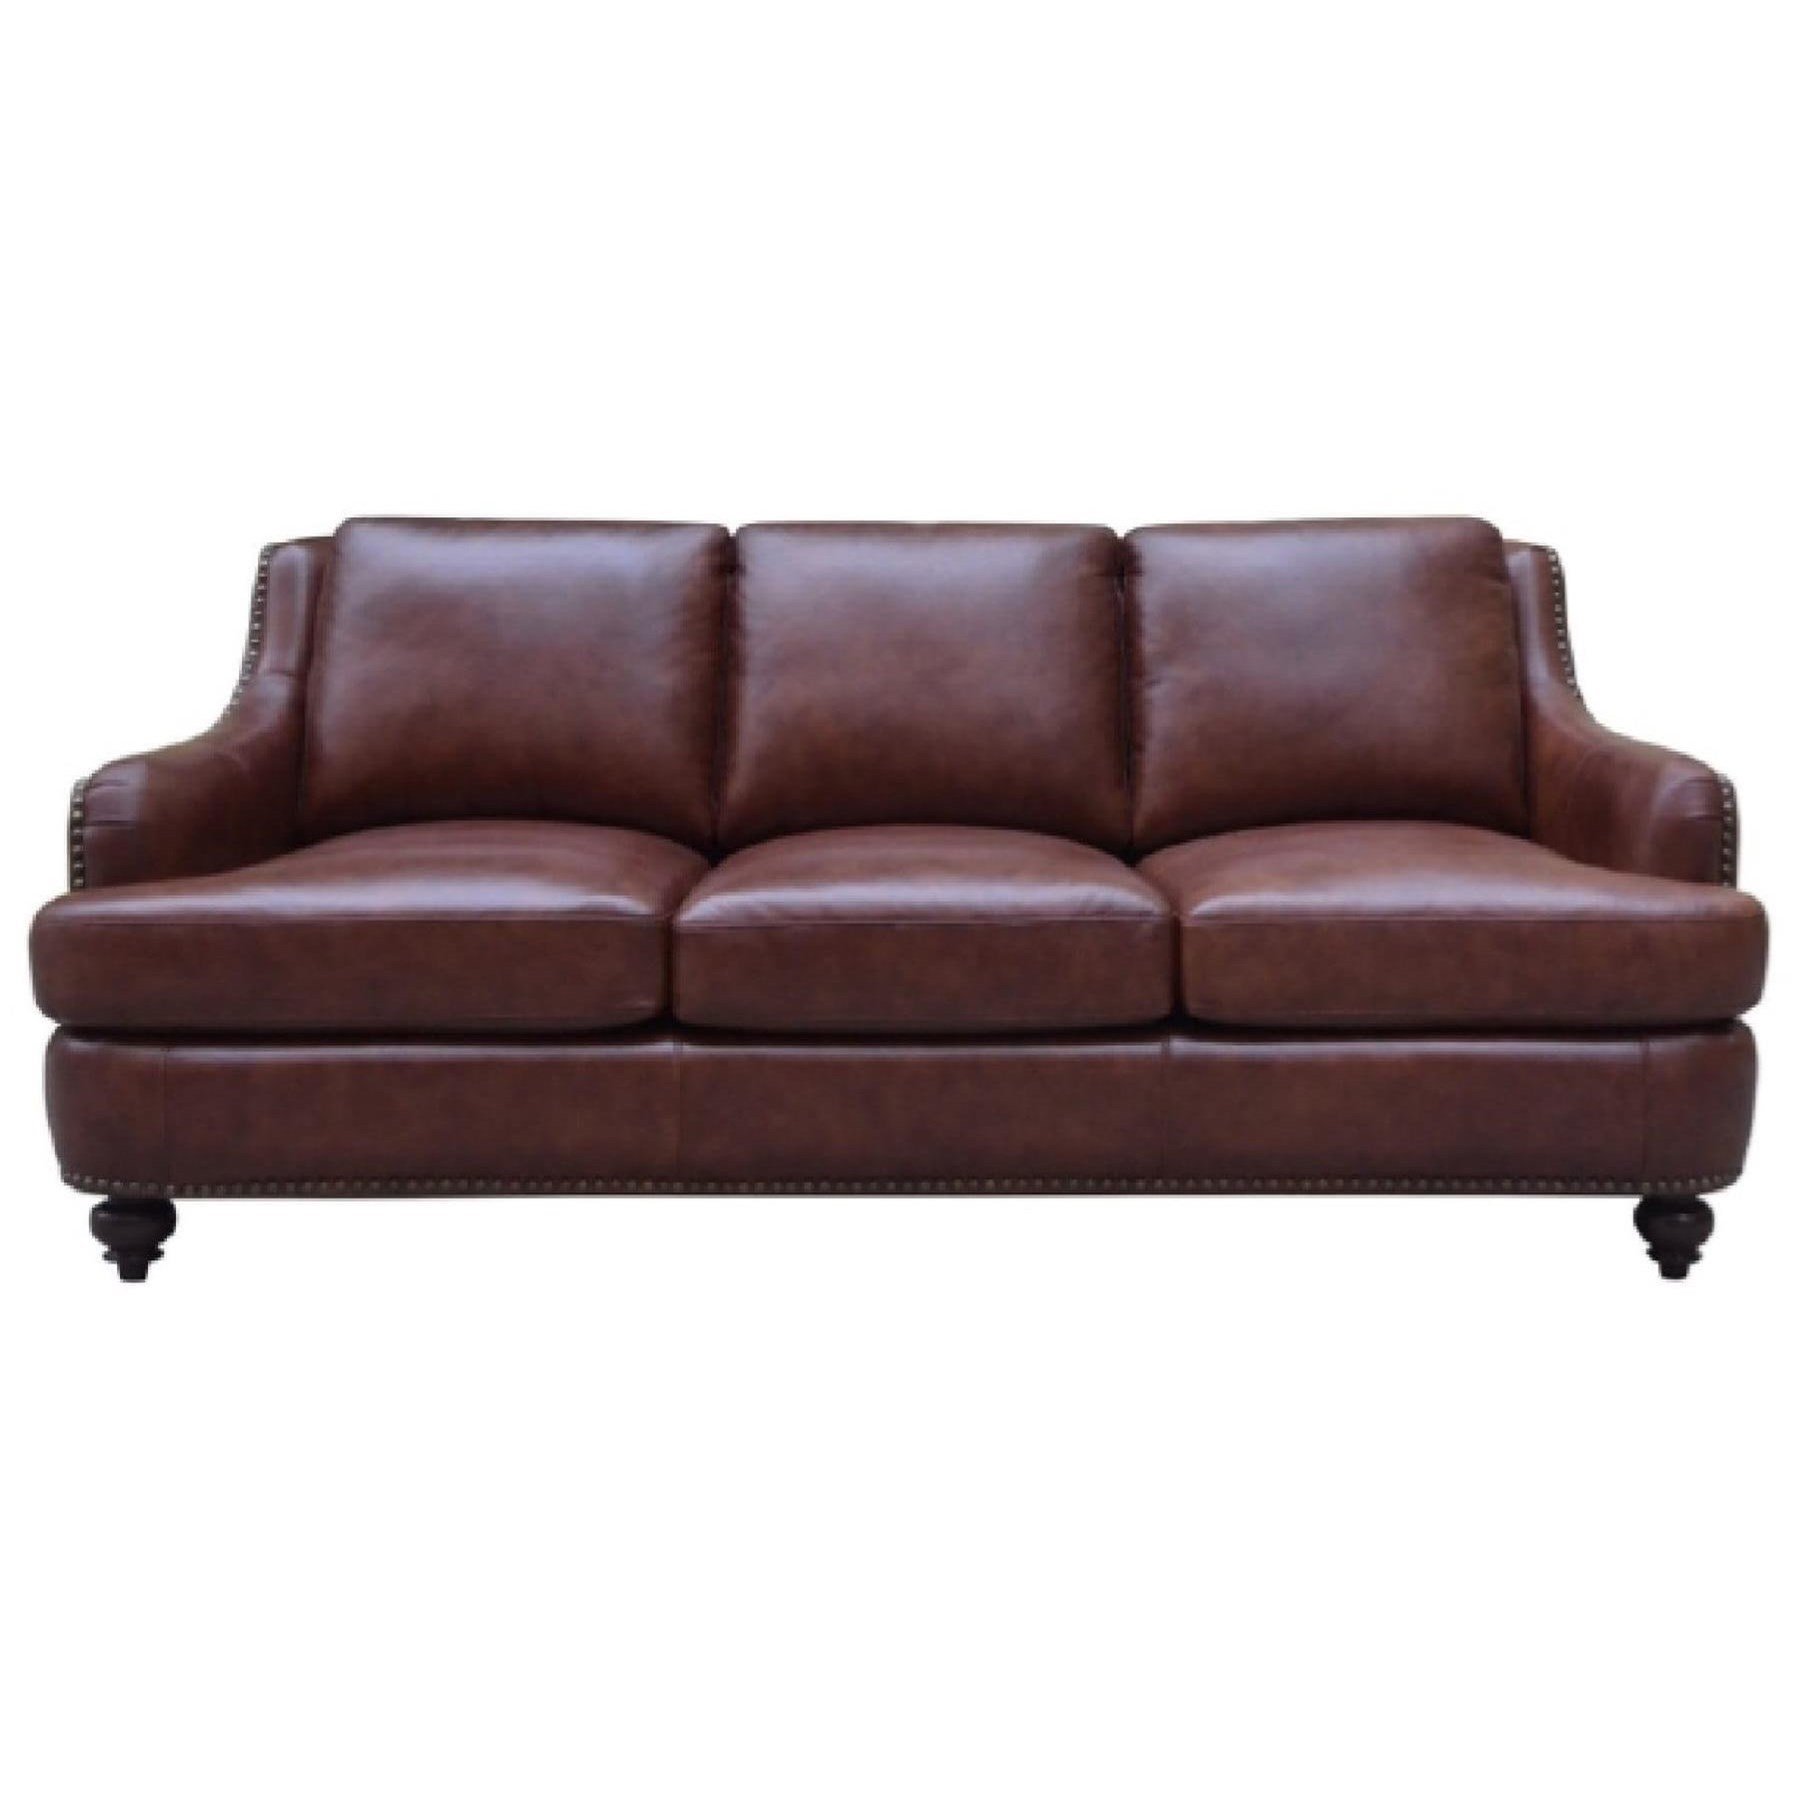 Image Result For Furniture Stores Southaven Ms